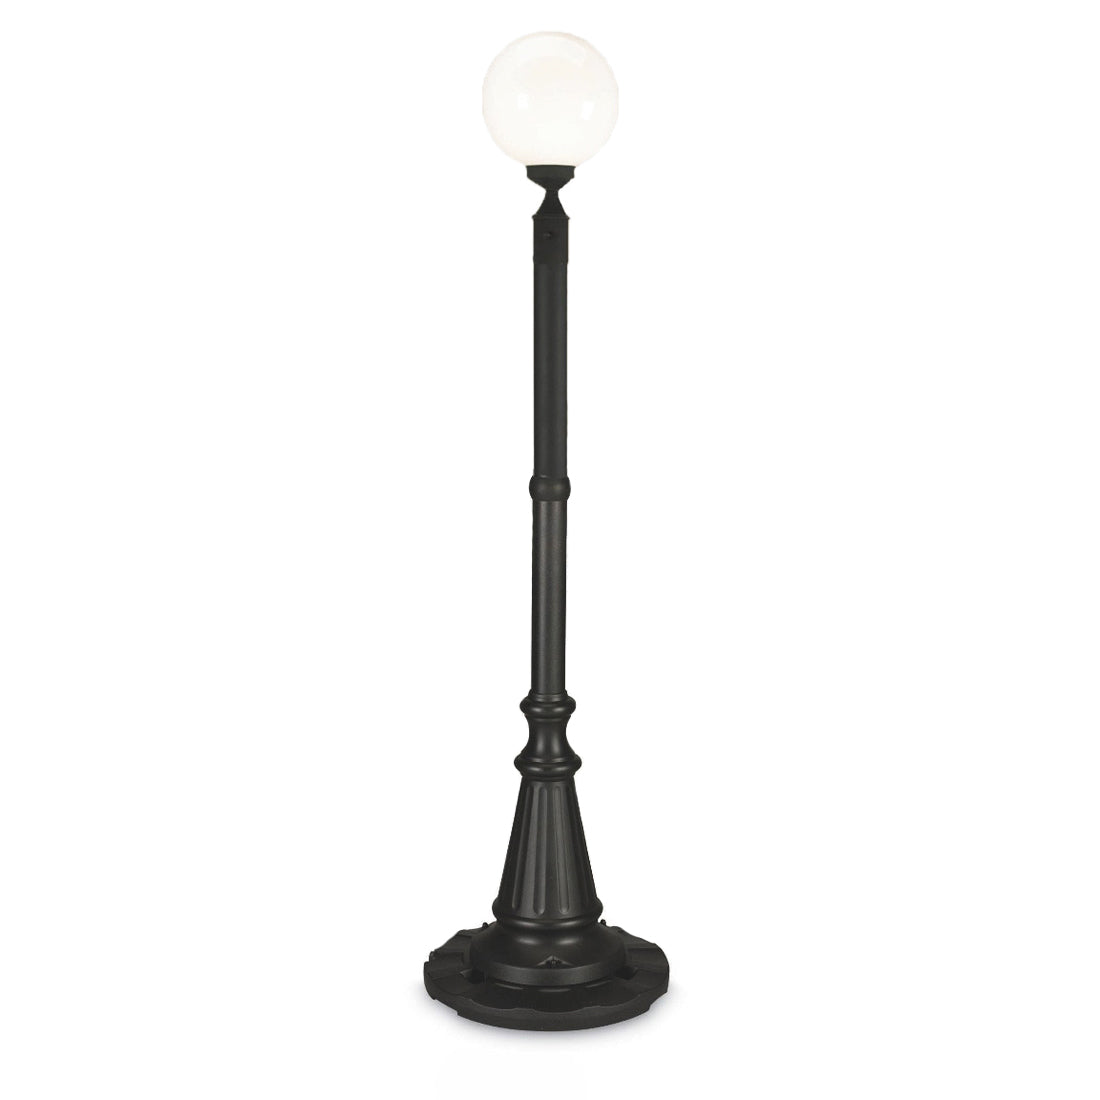 Milano 69100 - Black with White Globe Lantern